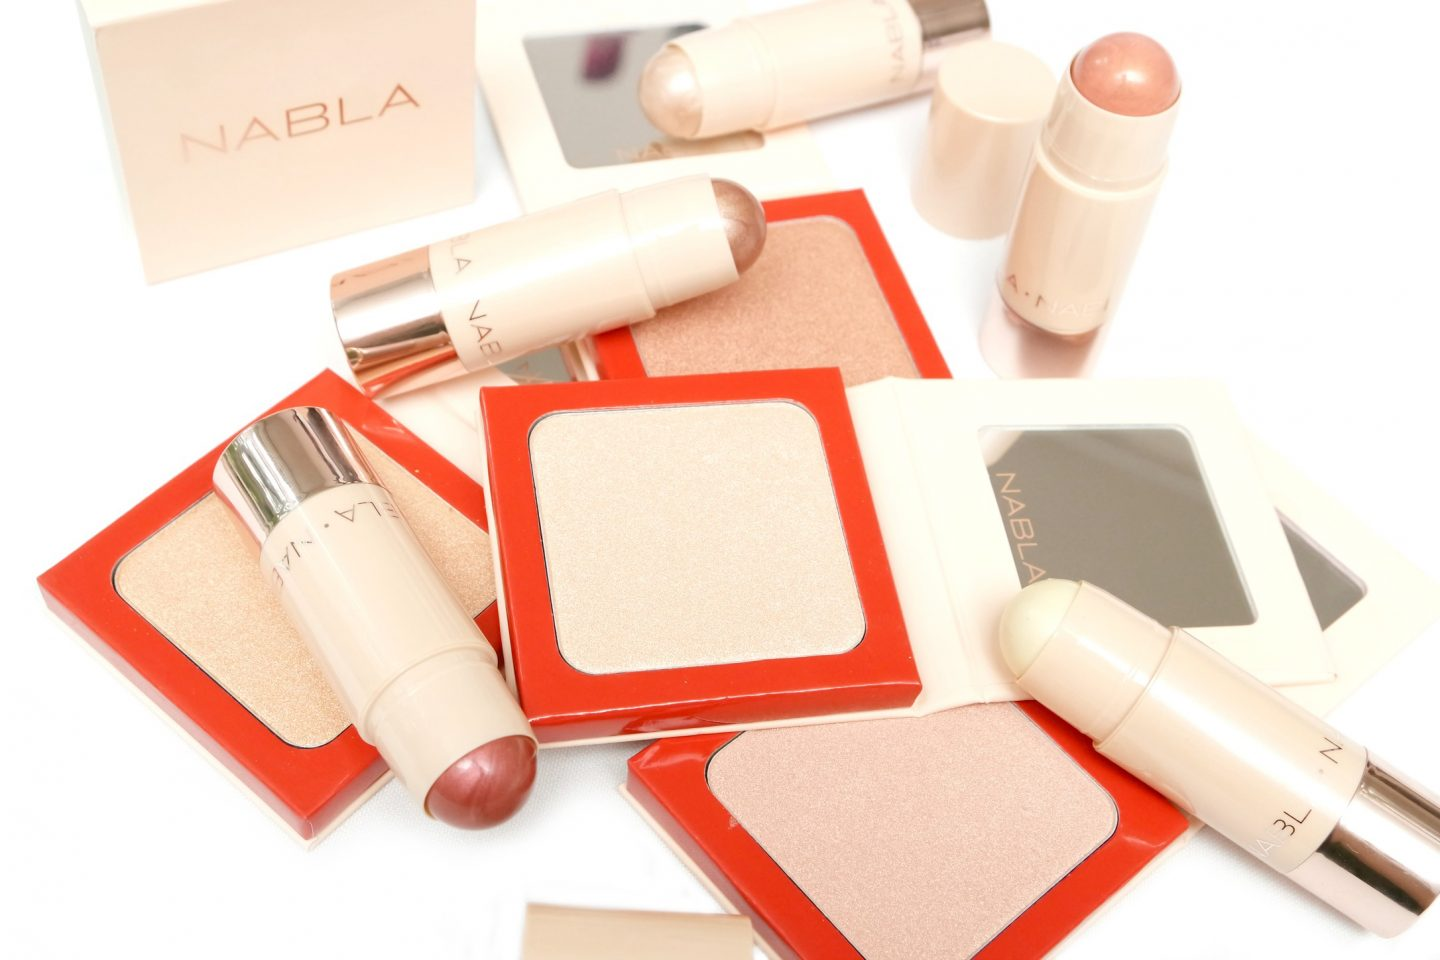 NABLA Denude Collection Review – Highlighters